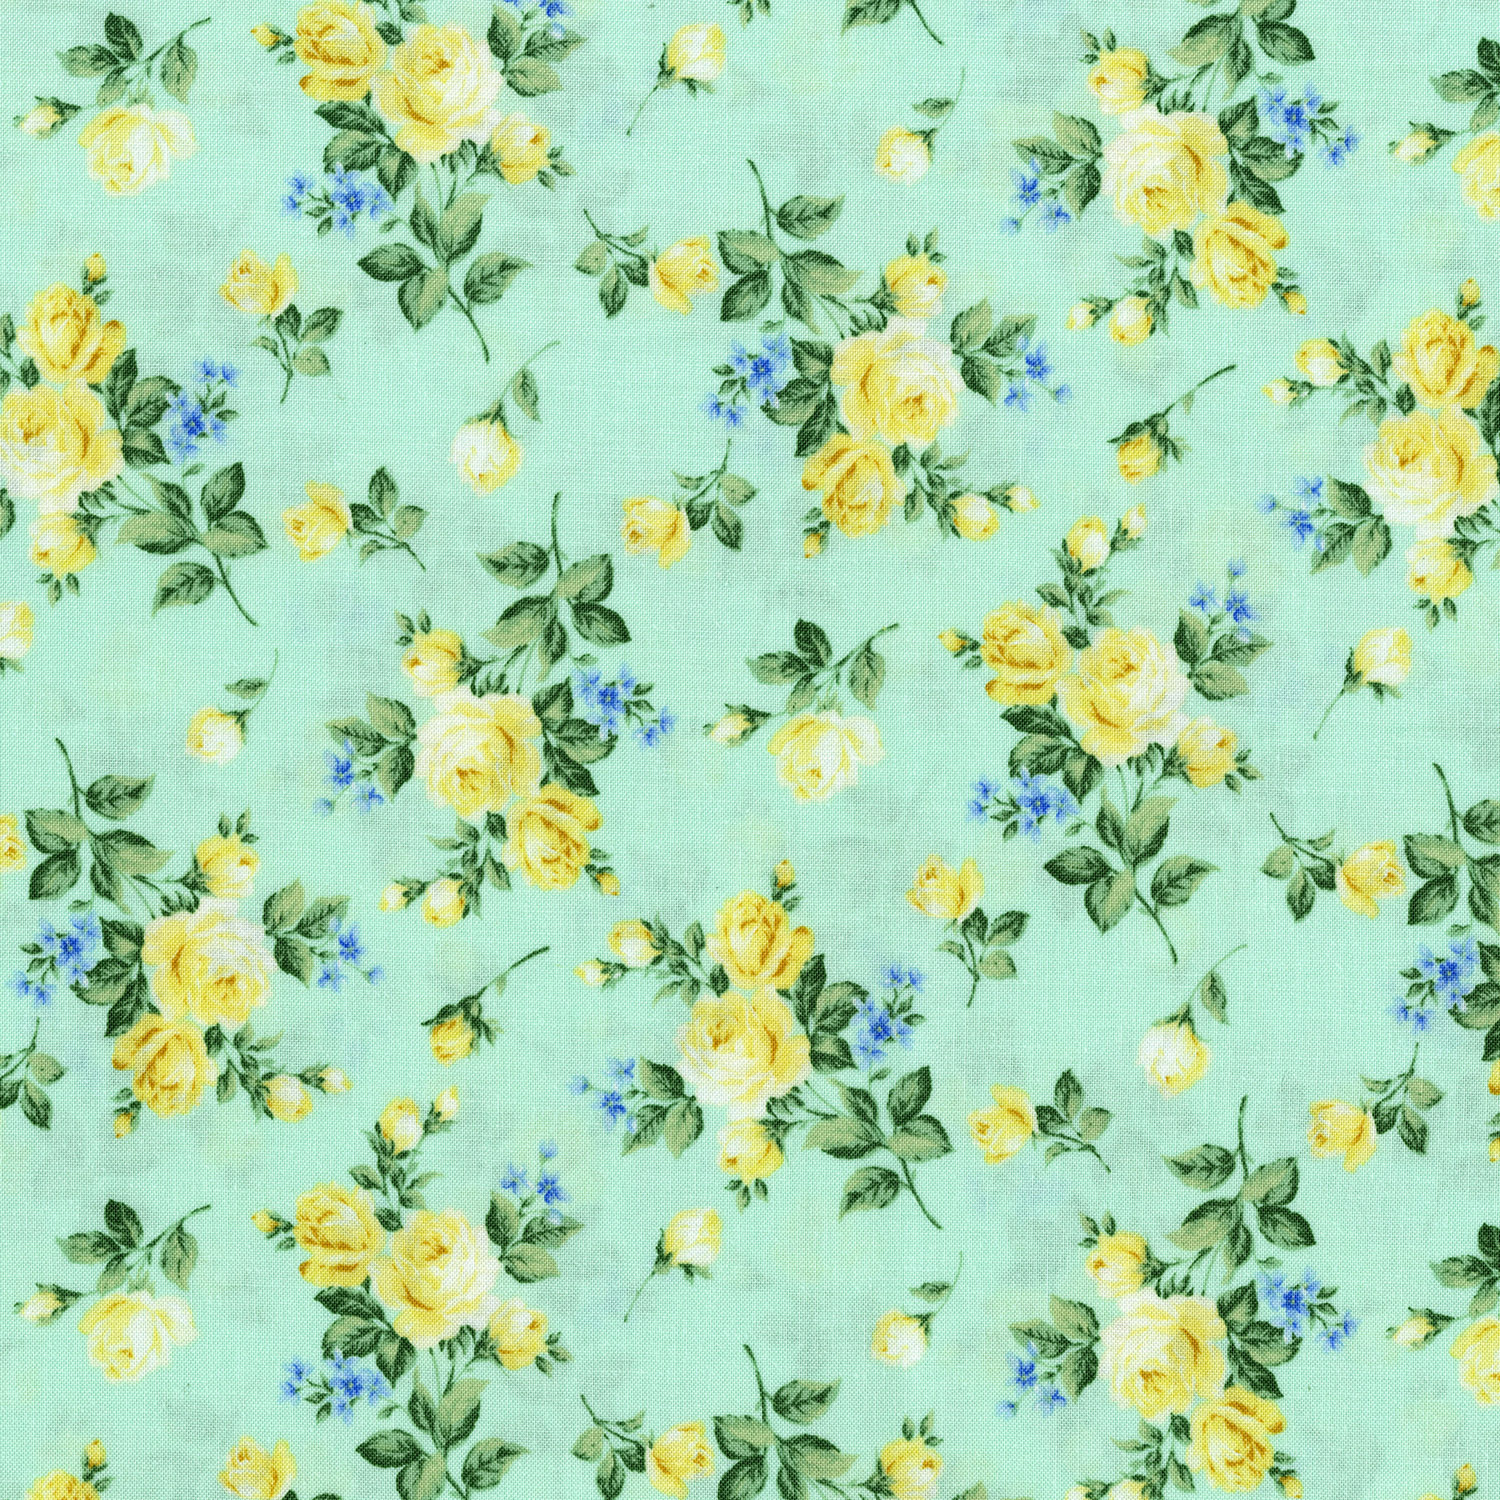 3145-003  HEIRLOOM FLORAL-  DAFFODIL